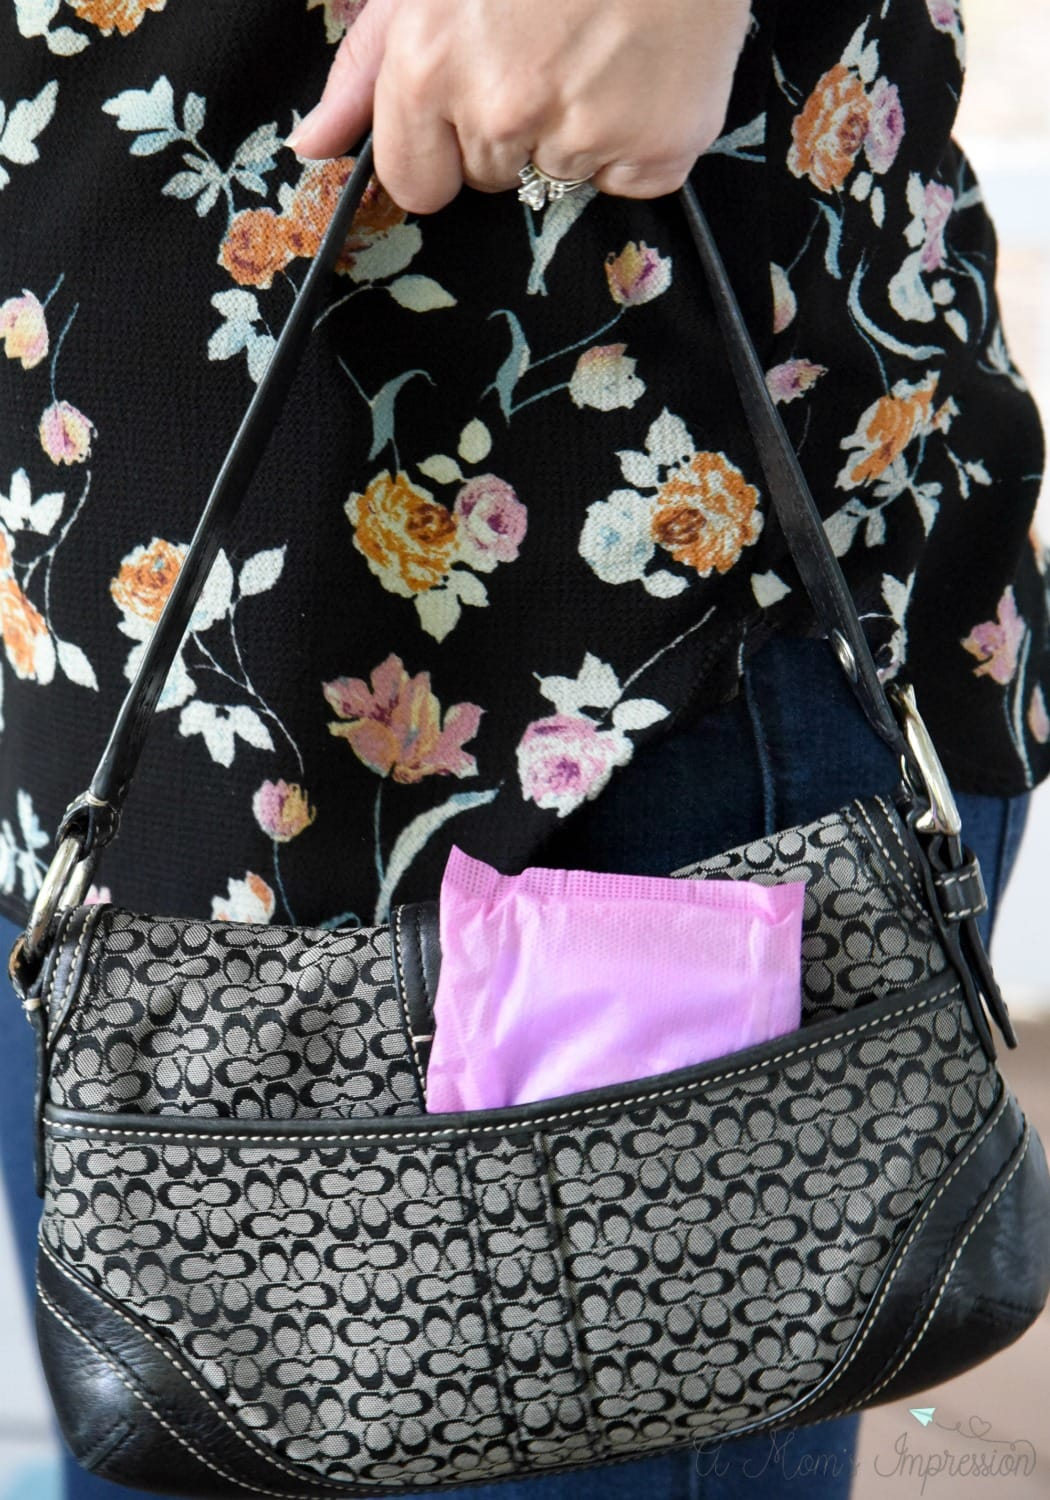 Poise in Purse